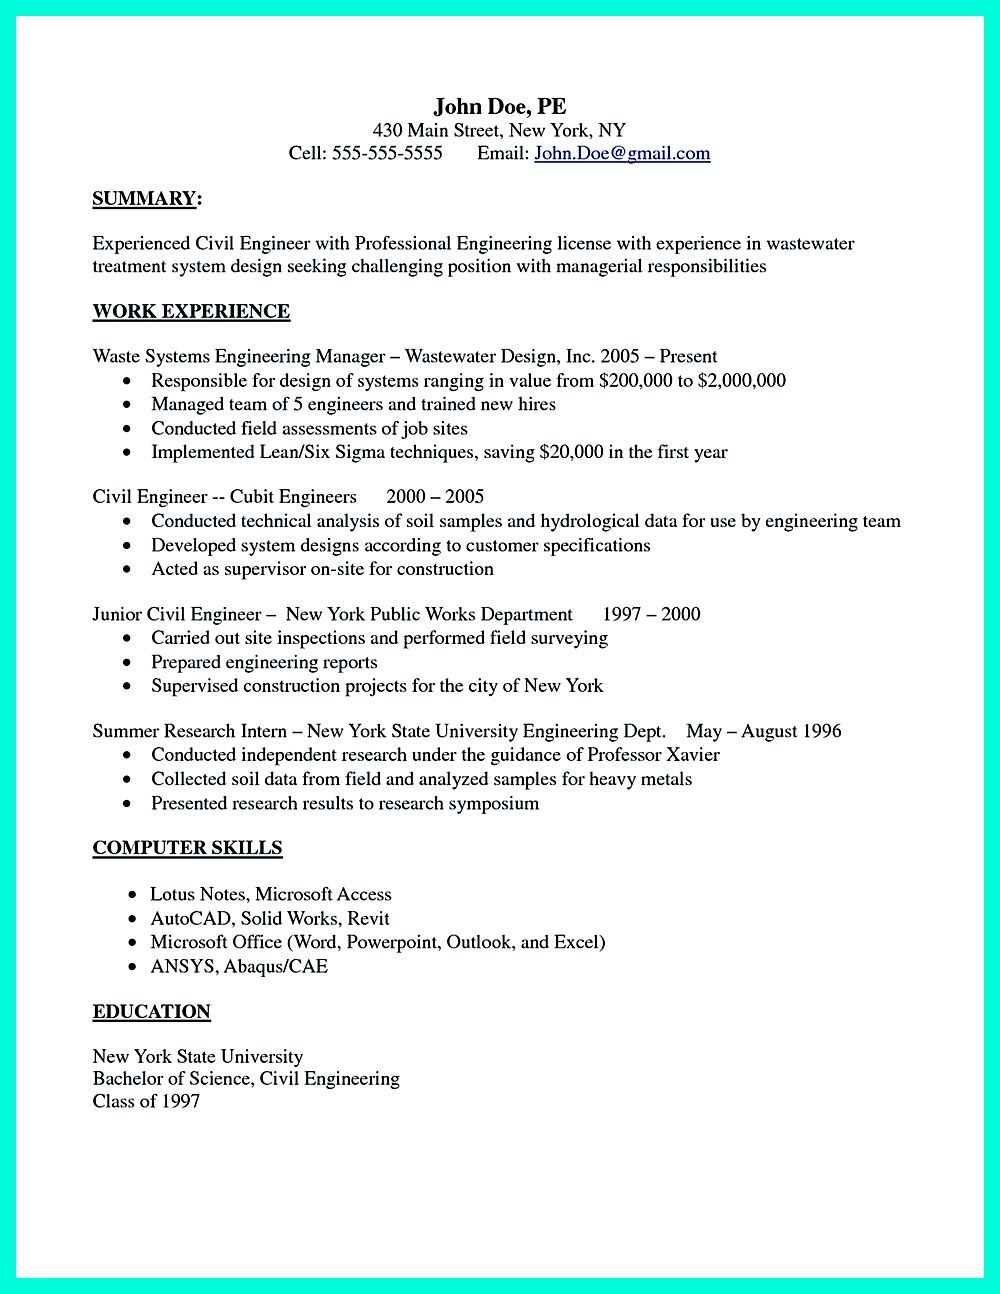 Resume Format Usa There Are So Many Civil Engineering Resume Samples You Can